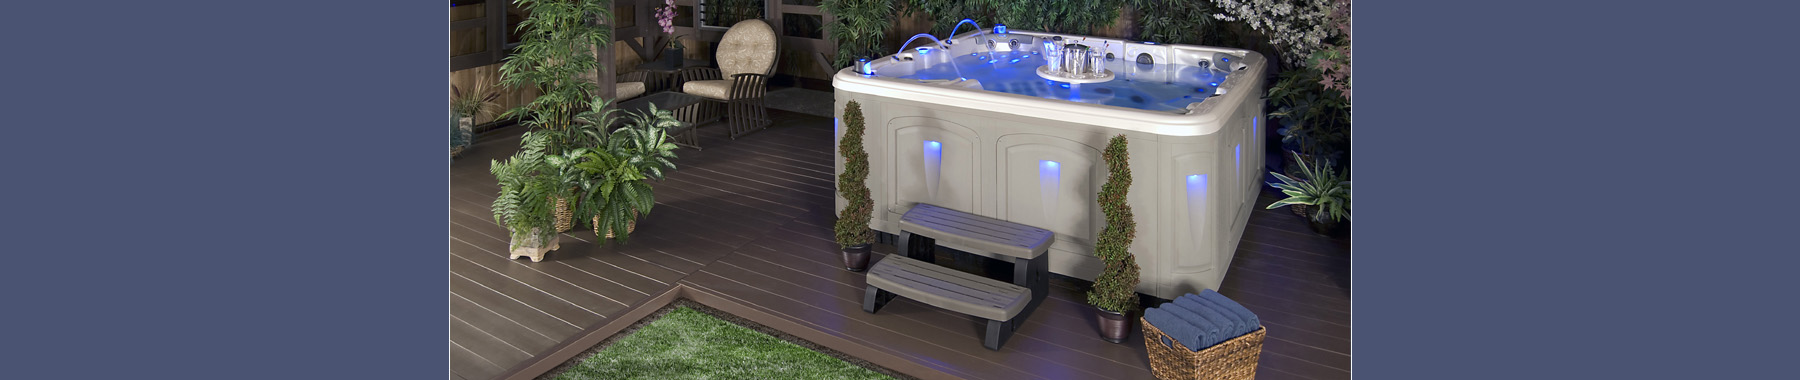 aqua elite pool and spa your partners in relaxationaqua. Black Bedroom Furniture Sets. Home Design Ideas